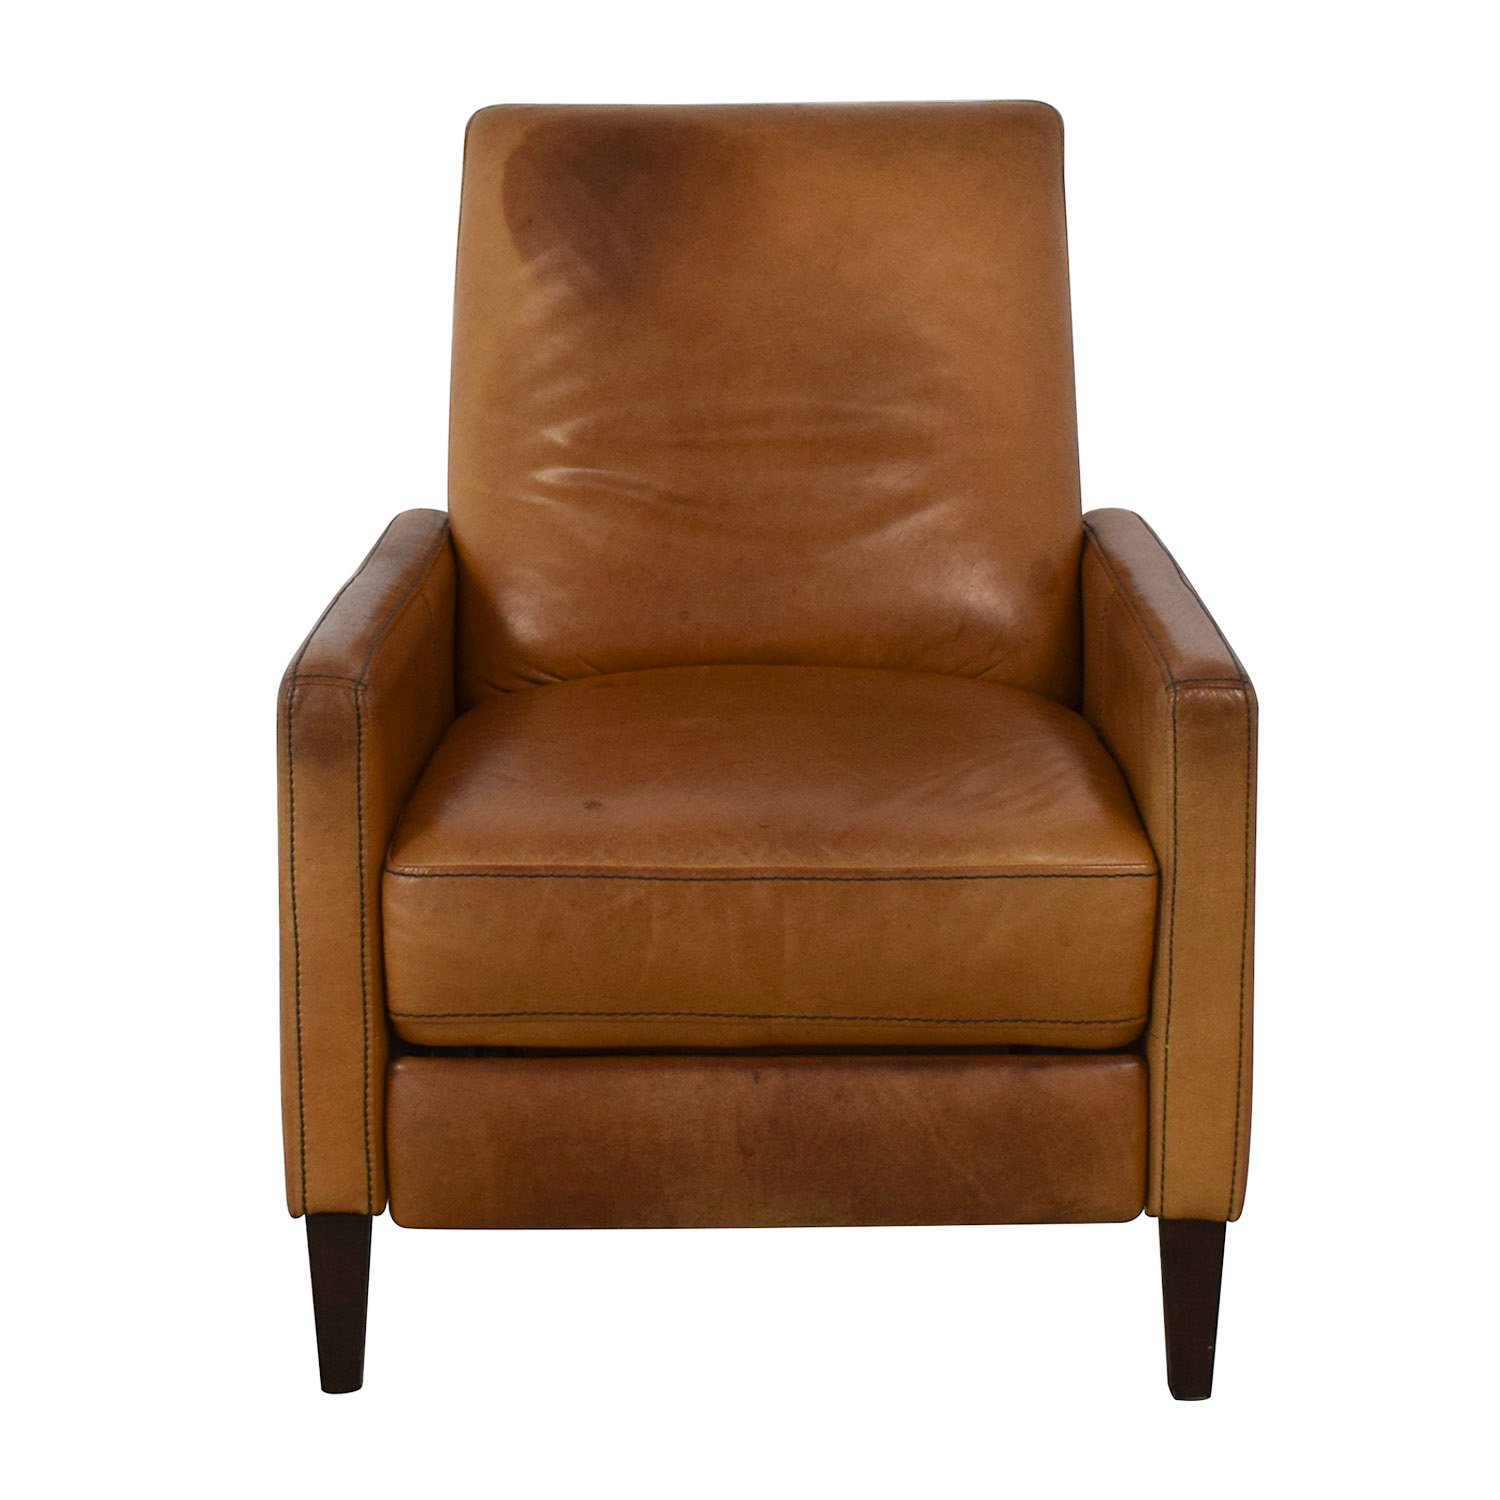 West Elm West Elm Reclining Chair